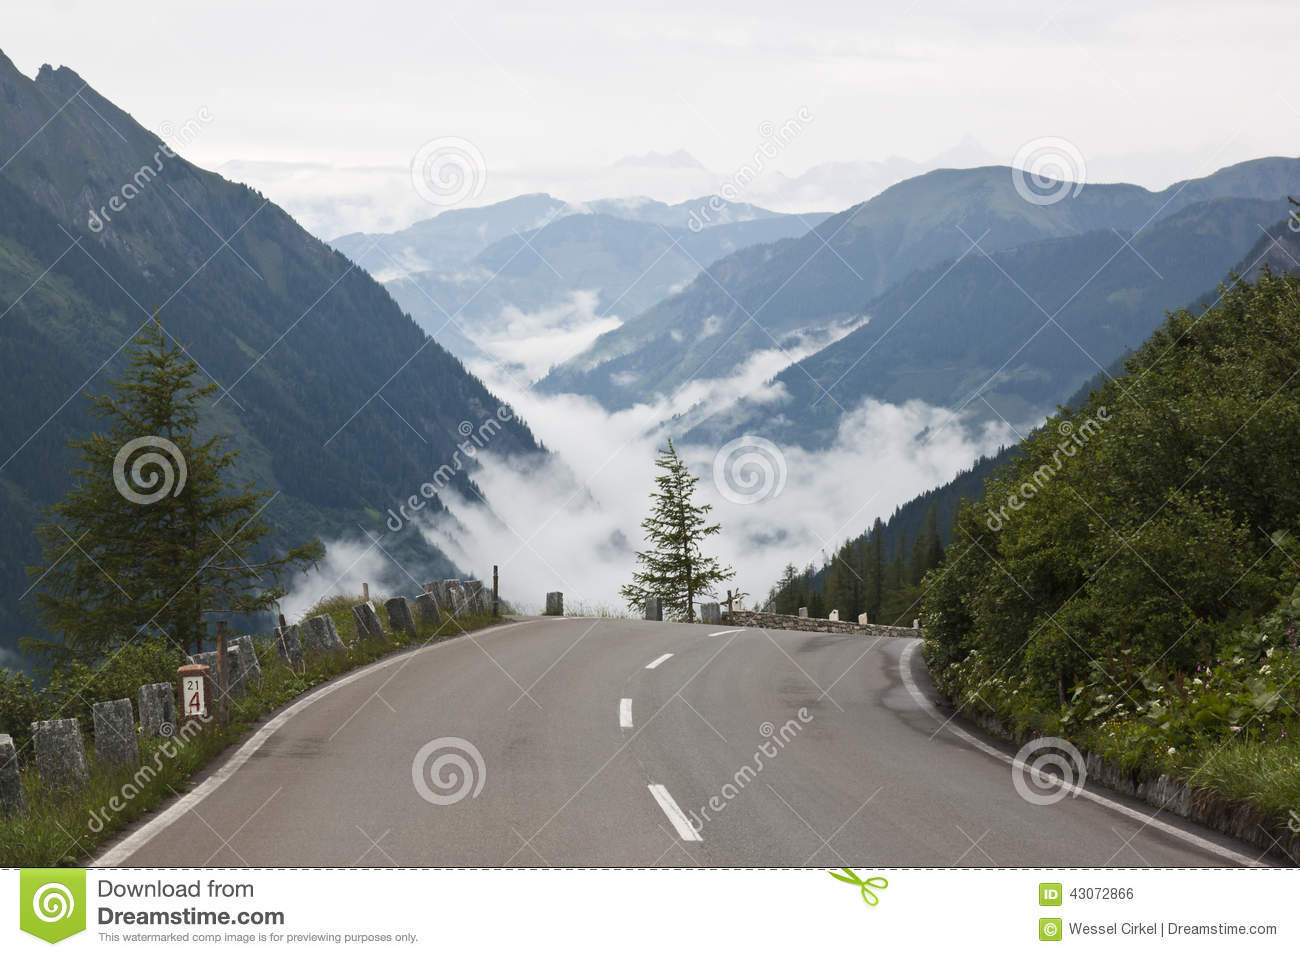 Grossglockner High Alpine Road In Tyrol, Austria Stock Photo.